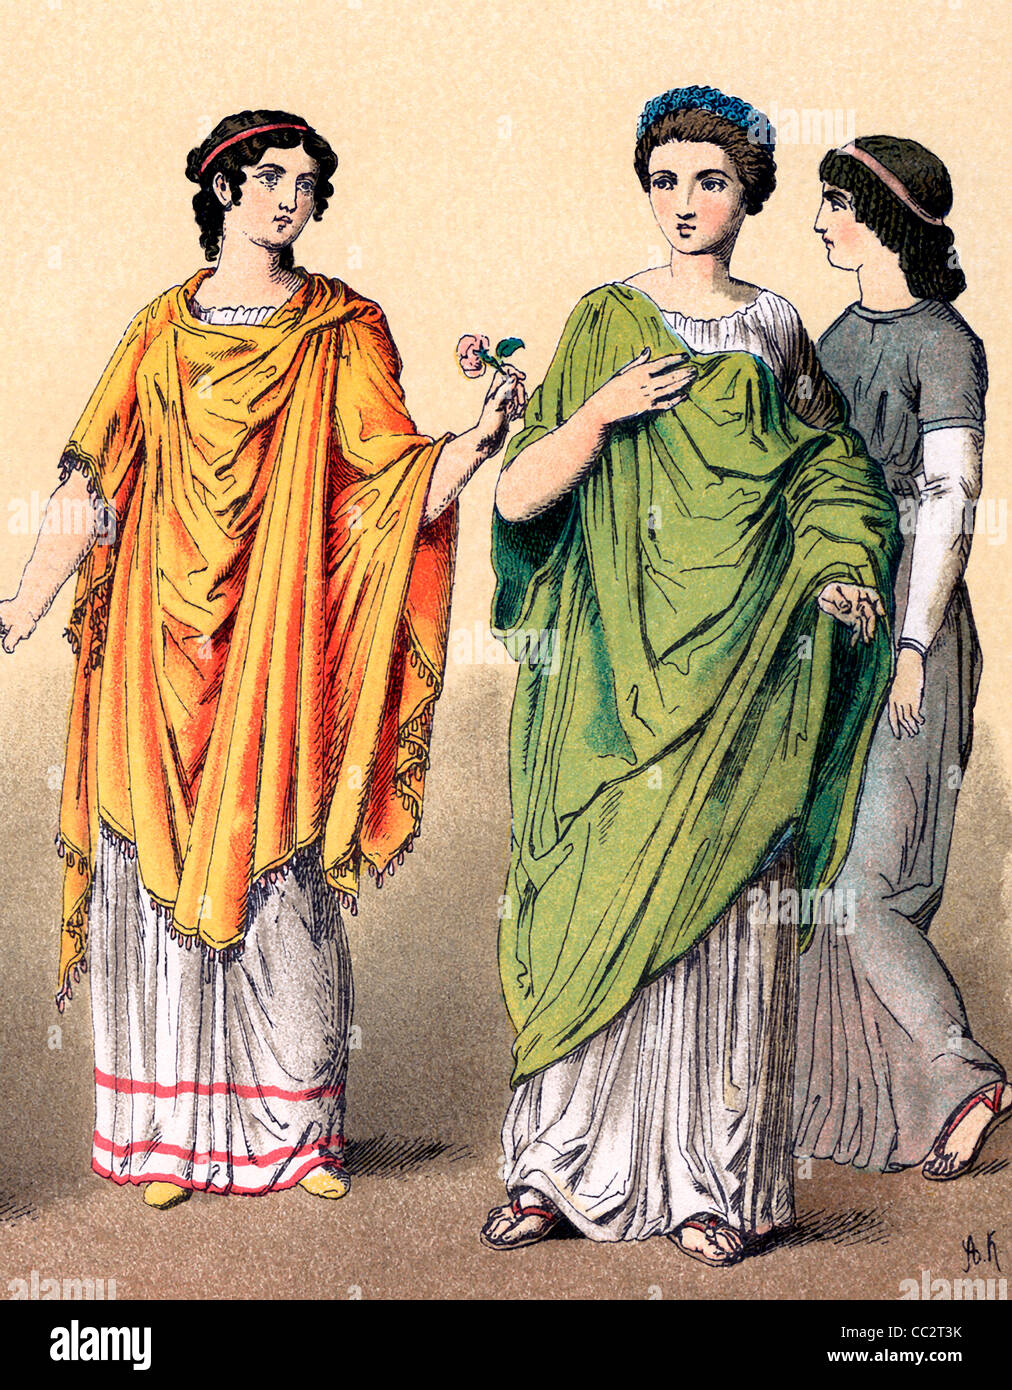 46966aab7d8 Dress of Roman women in late Republican and Imperial times (around 100 B.C.  to A.D. 100). Note the hairstyles.